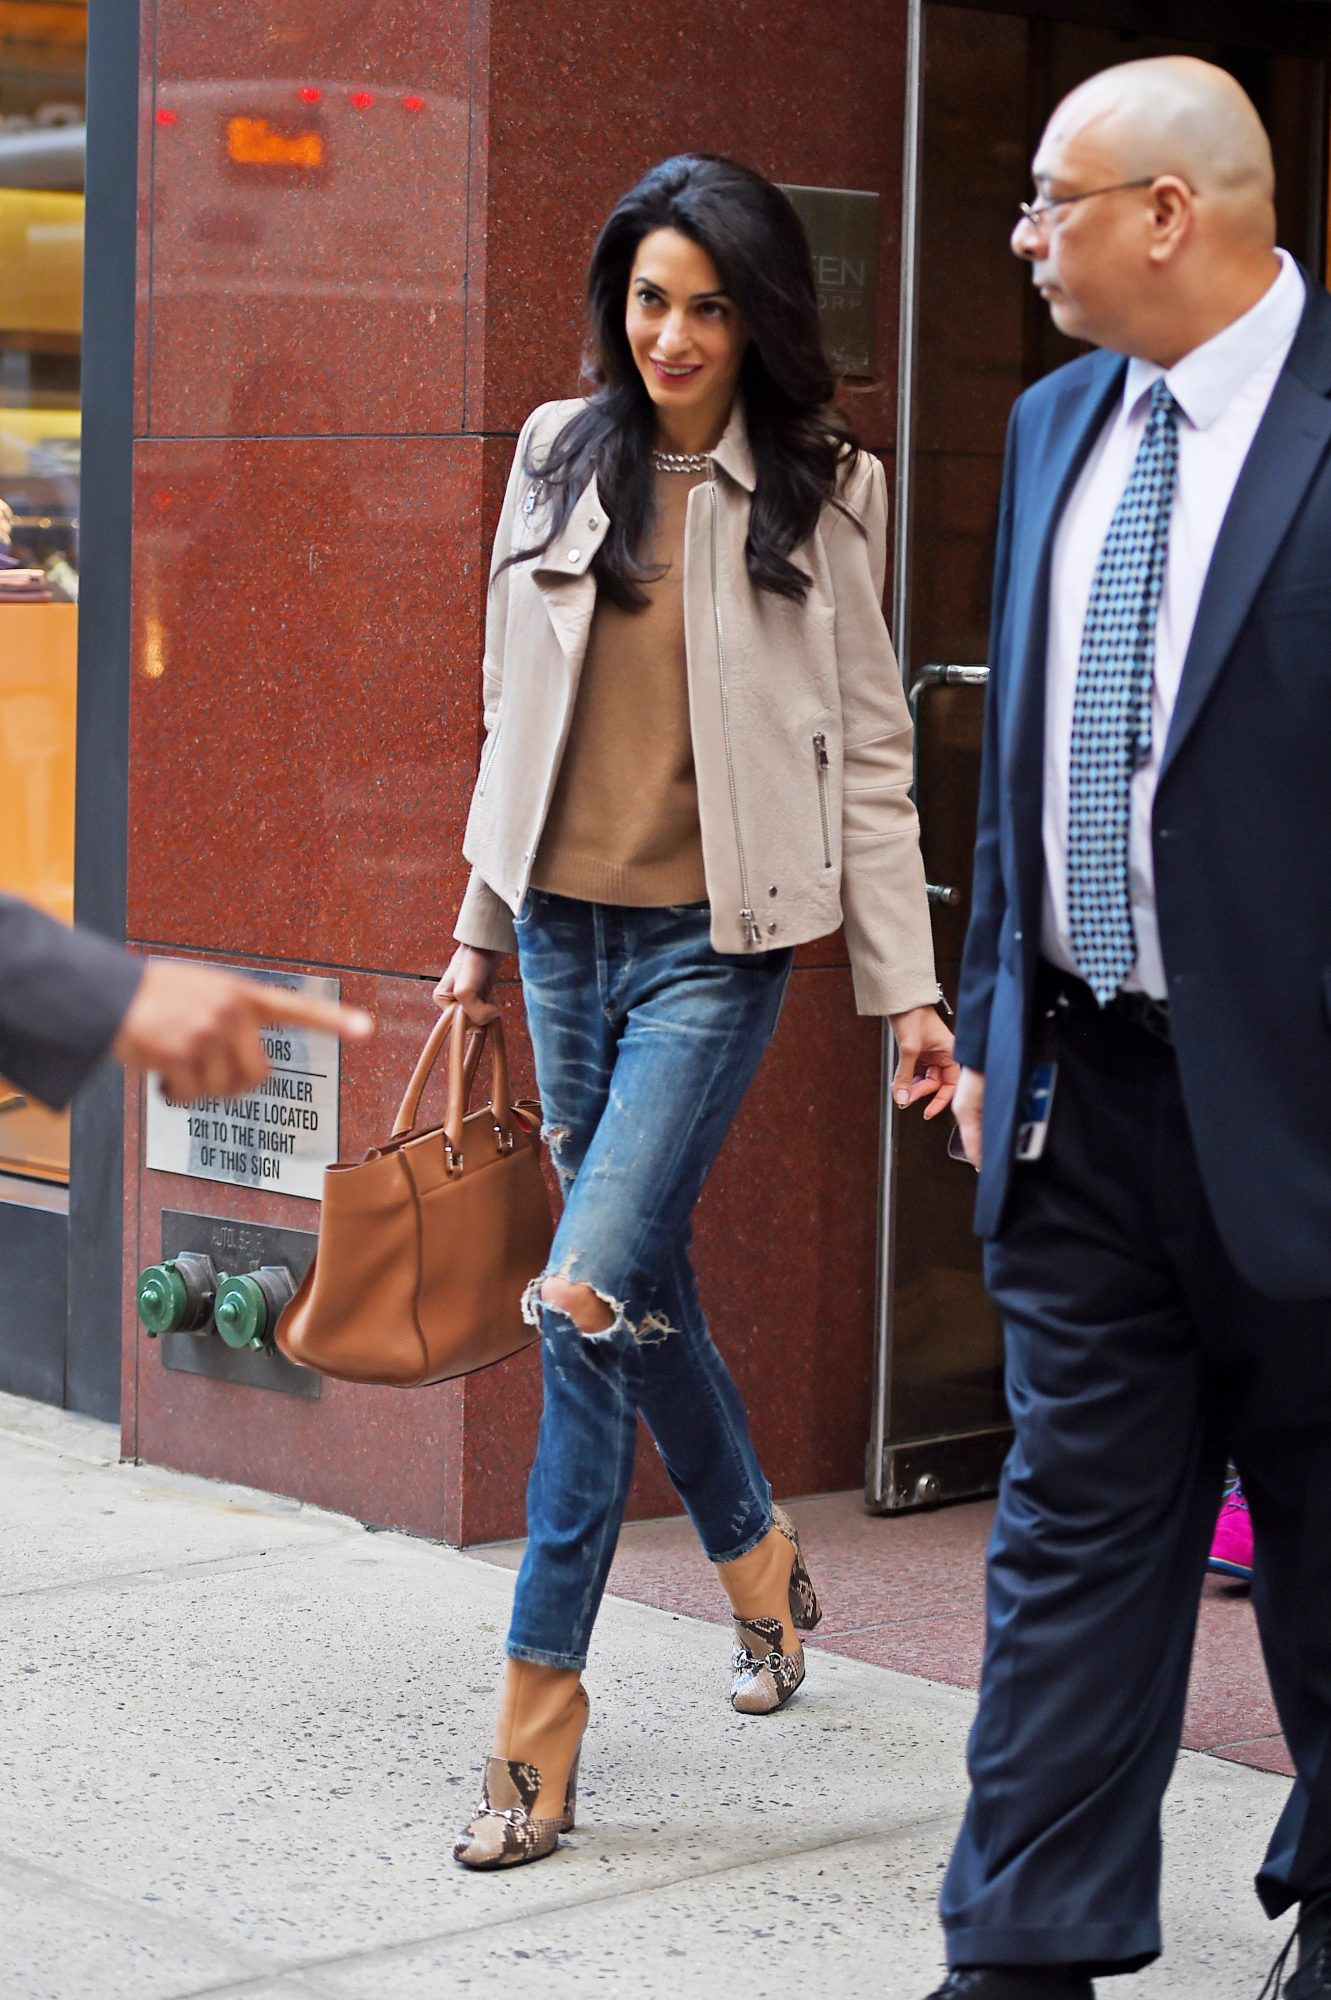 Amal Clooney's Snake Print Boots on Sale at Nordstrom's After-Christmas Sale